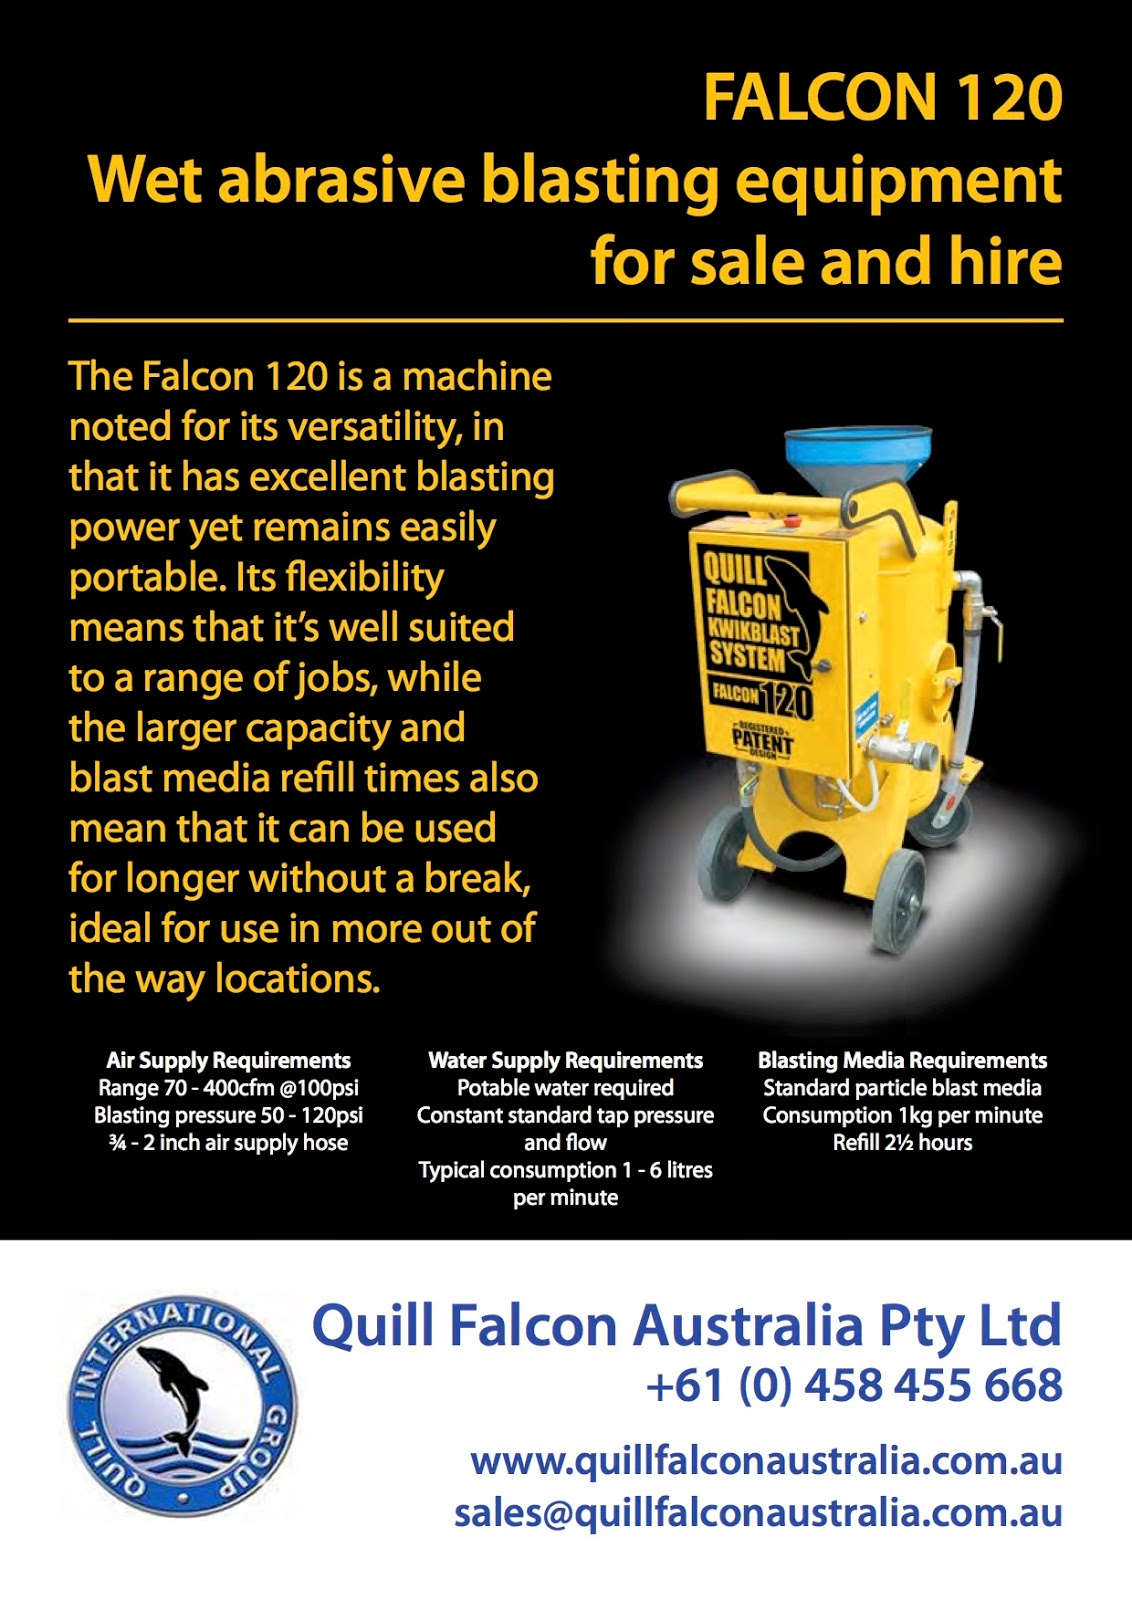 Falcon 120 | Quill Falcon wet abrasive blasting machines for sale and hire